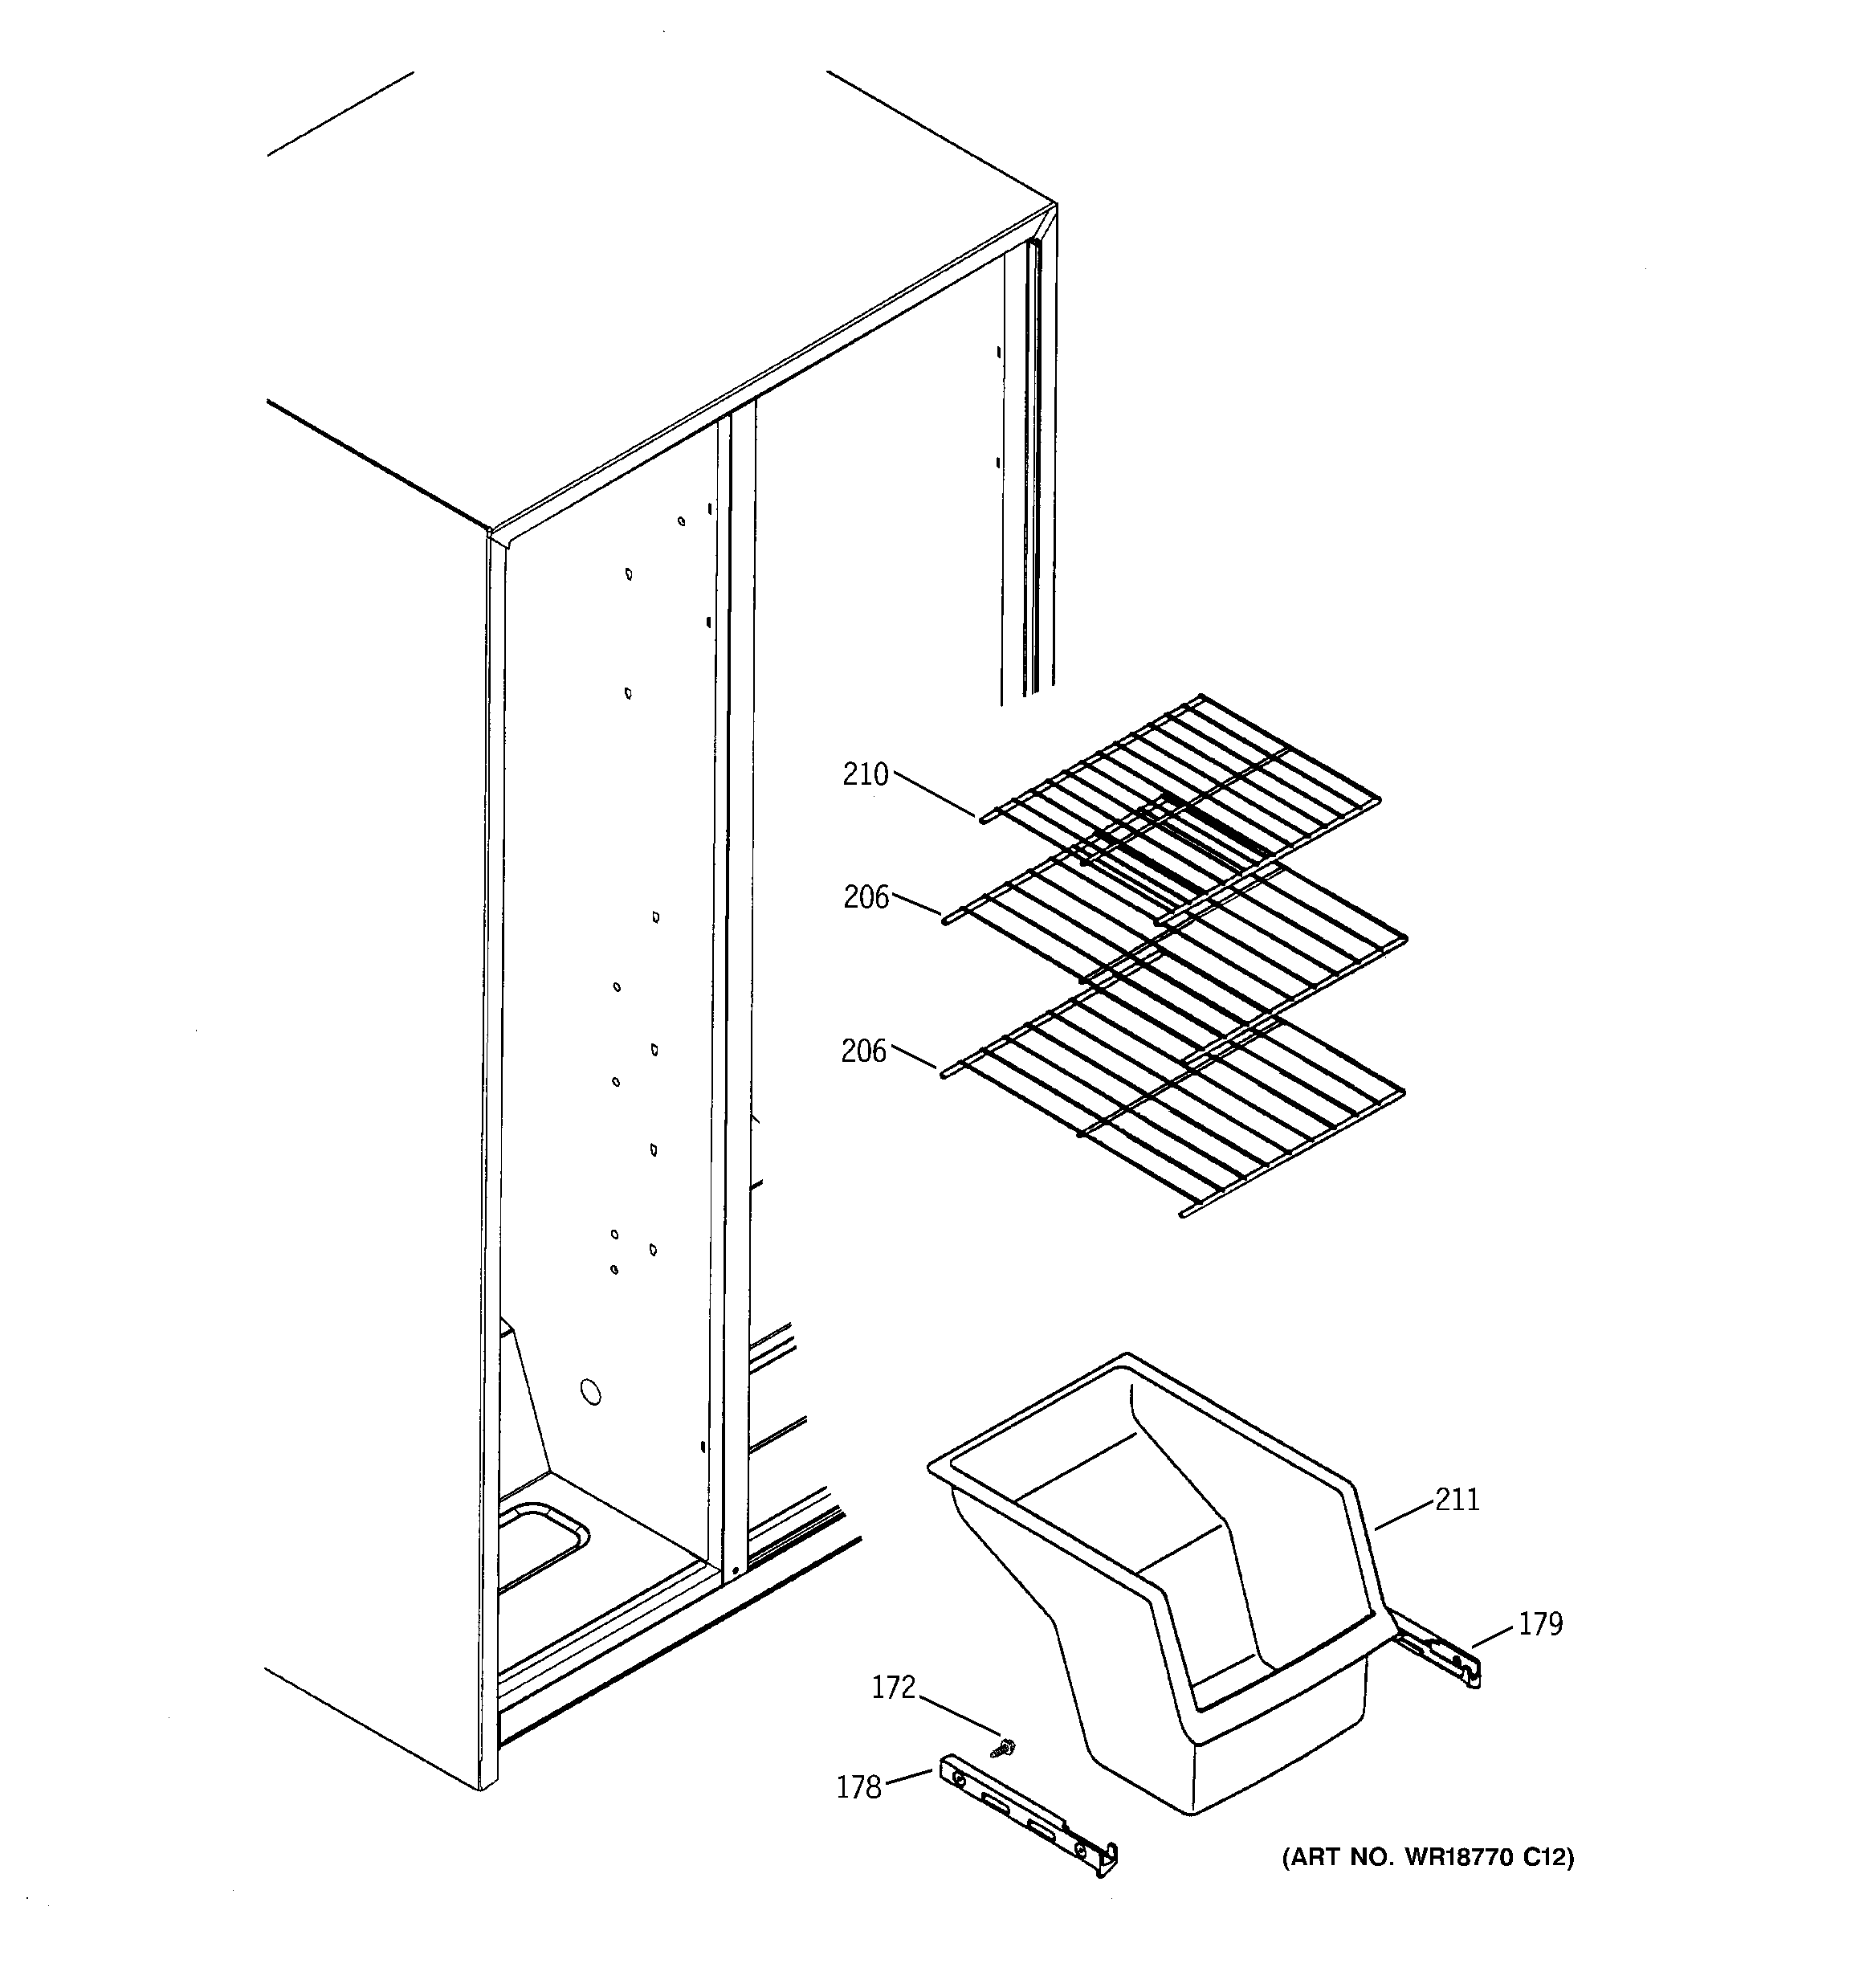 FREEZER SHELVES Diagram & Parts List for Model a4425gdtbww